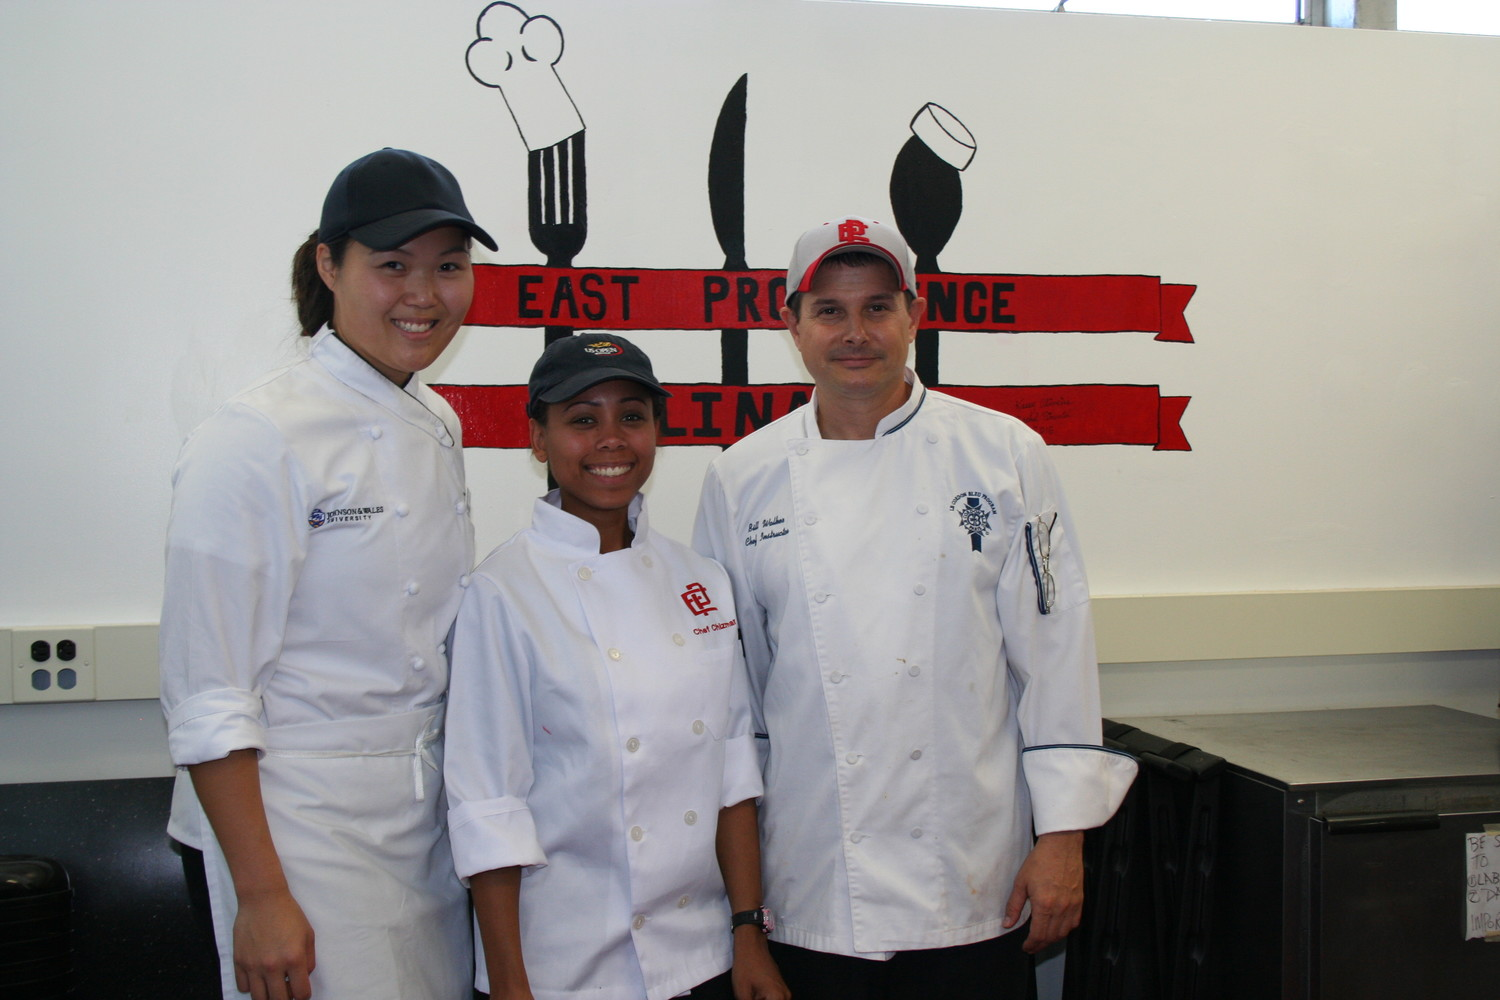 Left to right Chefs Natalie Kehlbeck, Monet Chizmar and Bill Walker.